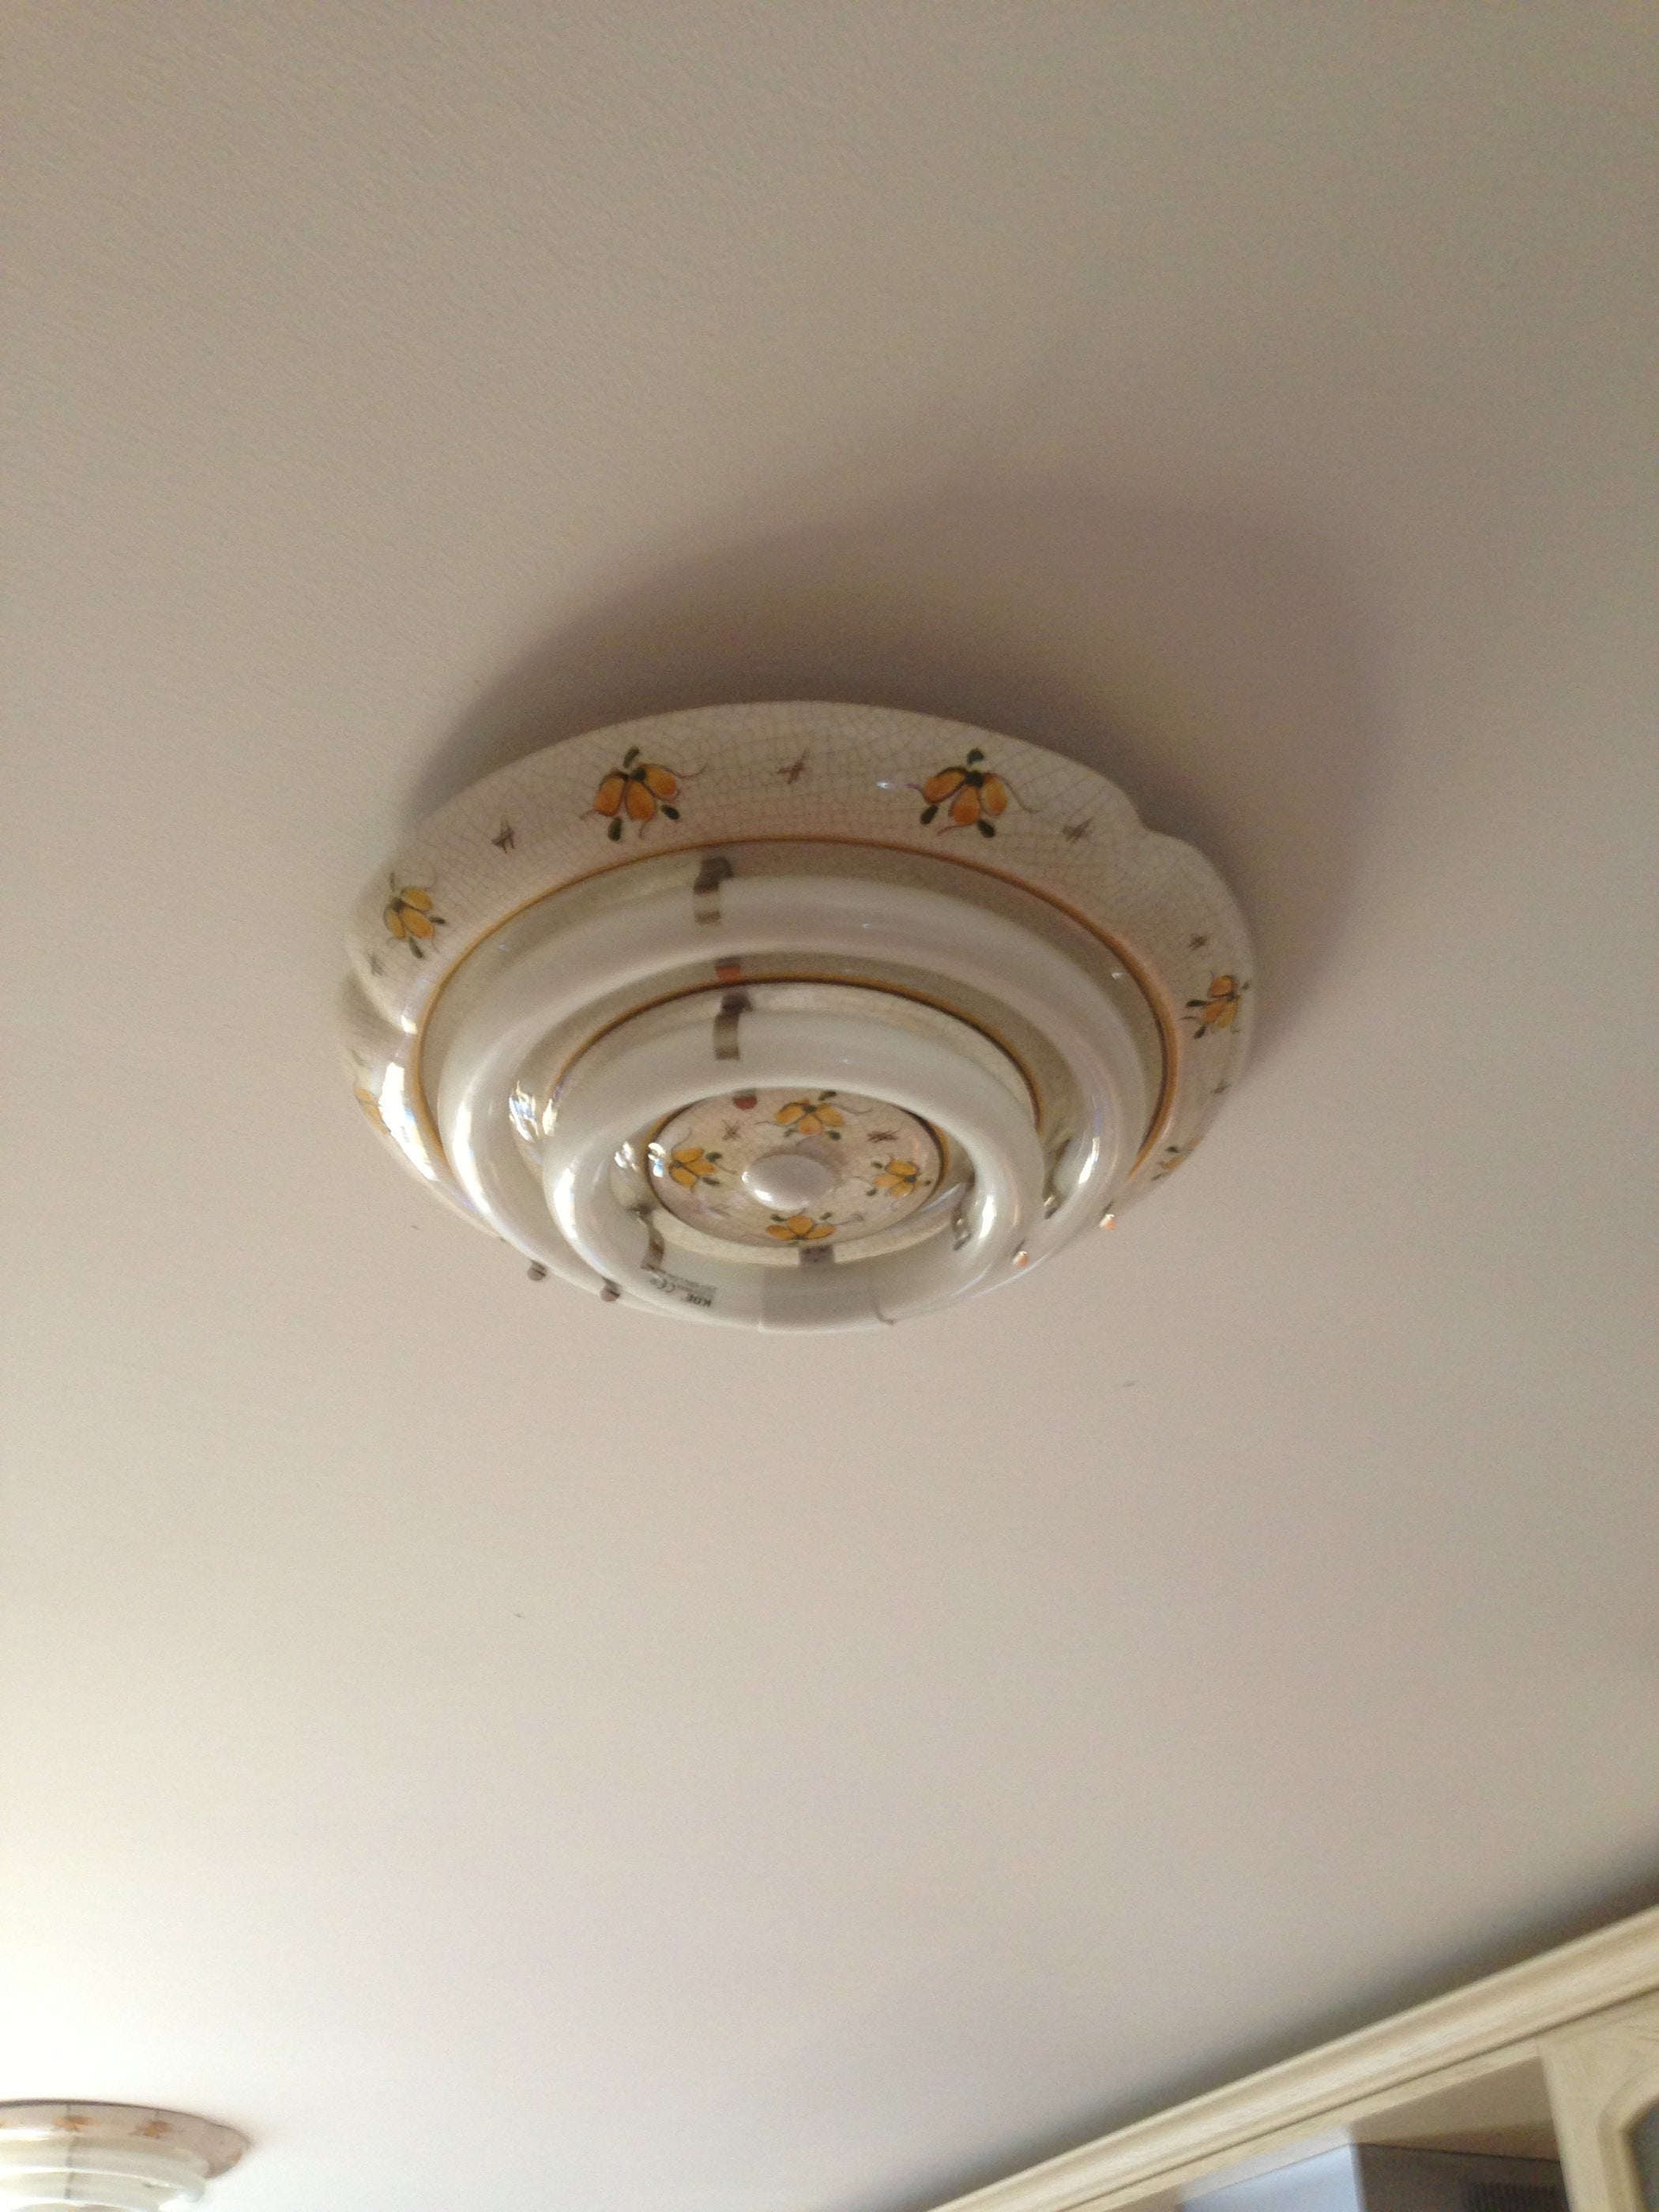 How to repair a dead fluorescent light fixture with a cfl